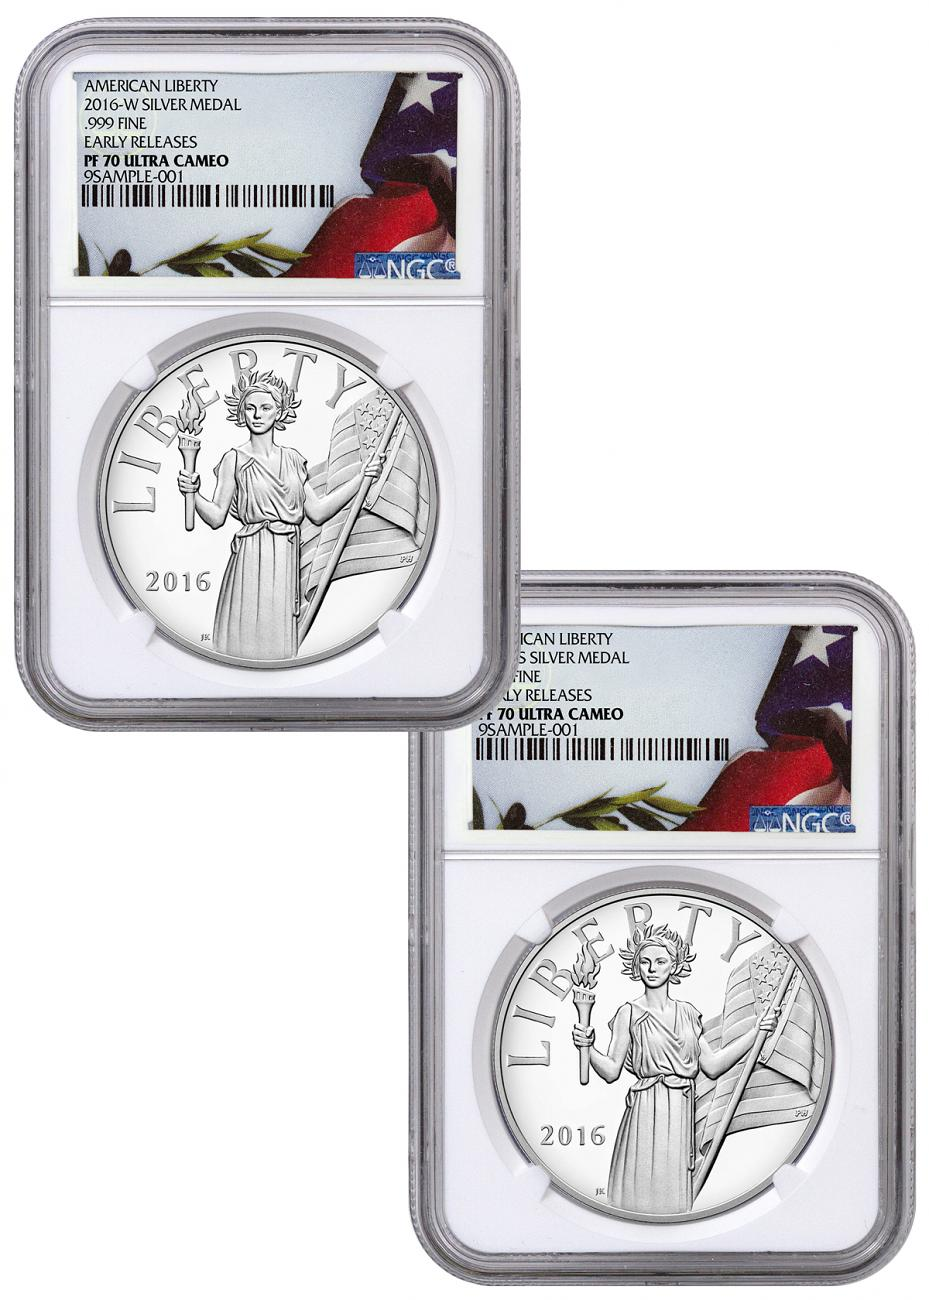 2016-W & S 1 oz. Proof Silver American Liberty Medal - 2 Medal Set - NGC PF70 UC Early Releases (Flag Label)